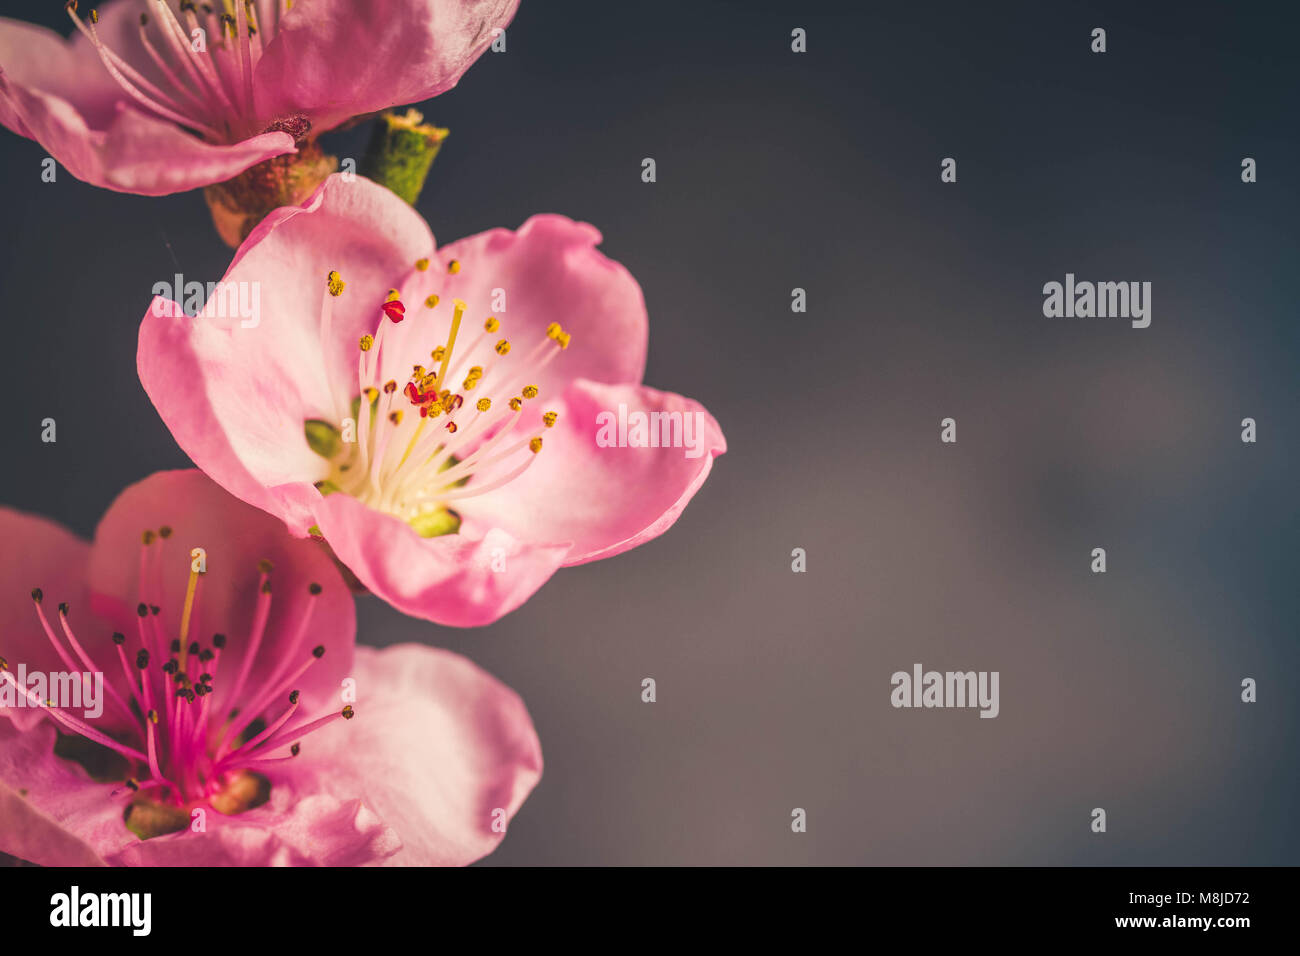 pink cherry blossom twigs close up with copy space on gray background, shalow focus, retro toned - Stock Image